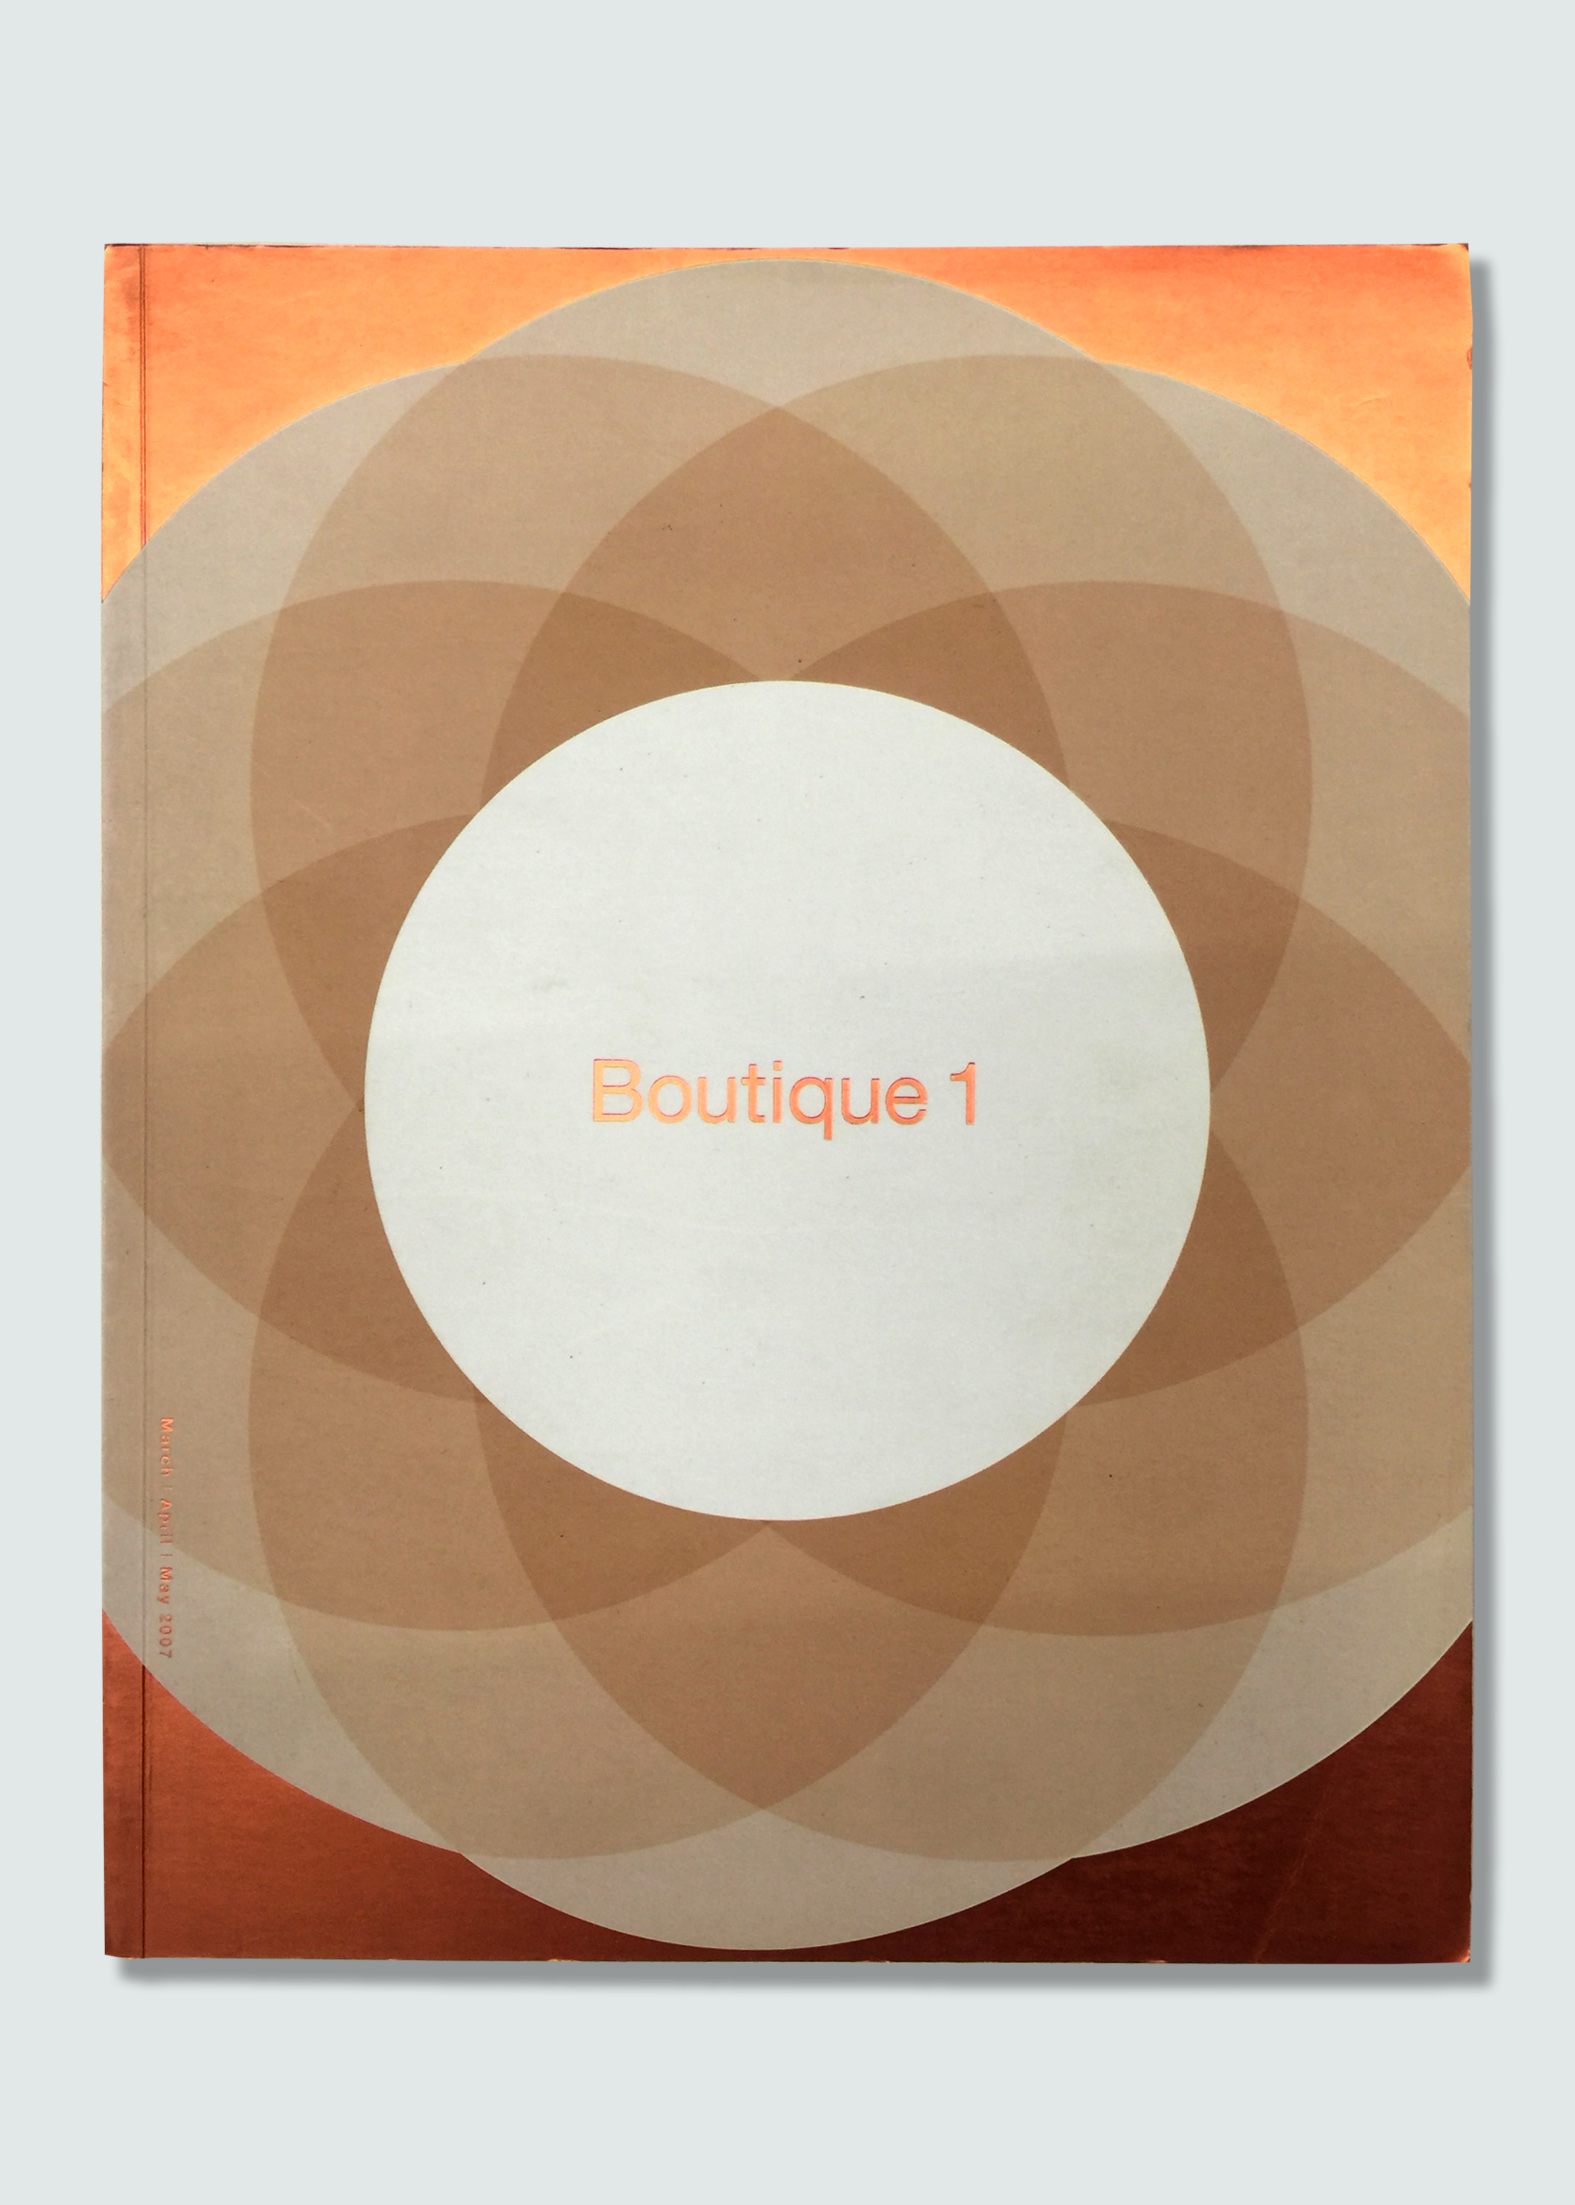 Boutique1_Cover 2.jpg